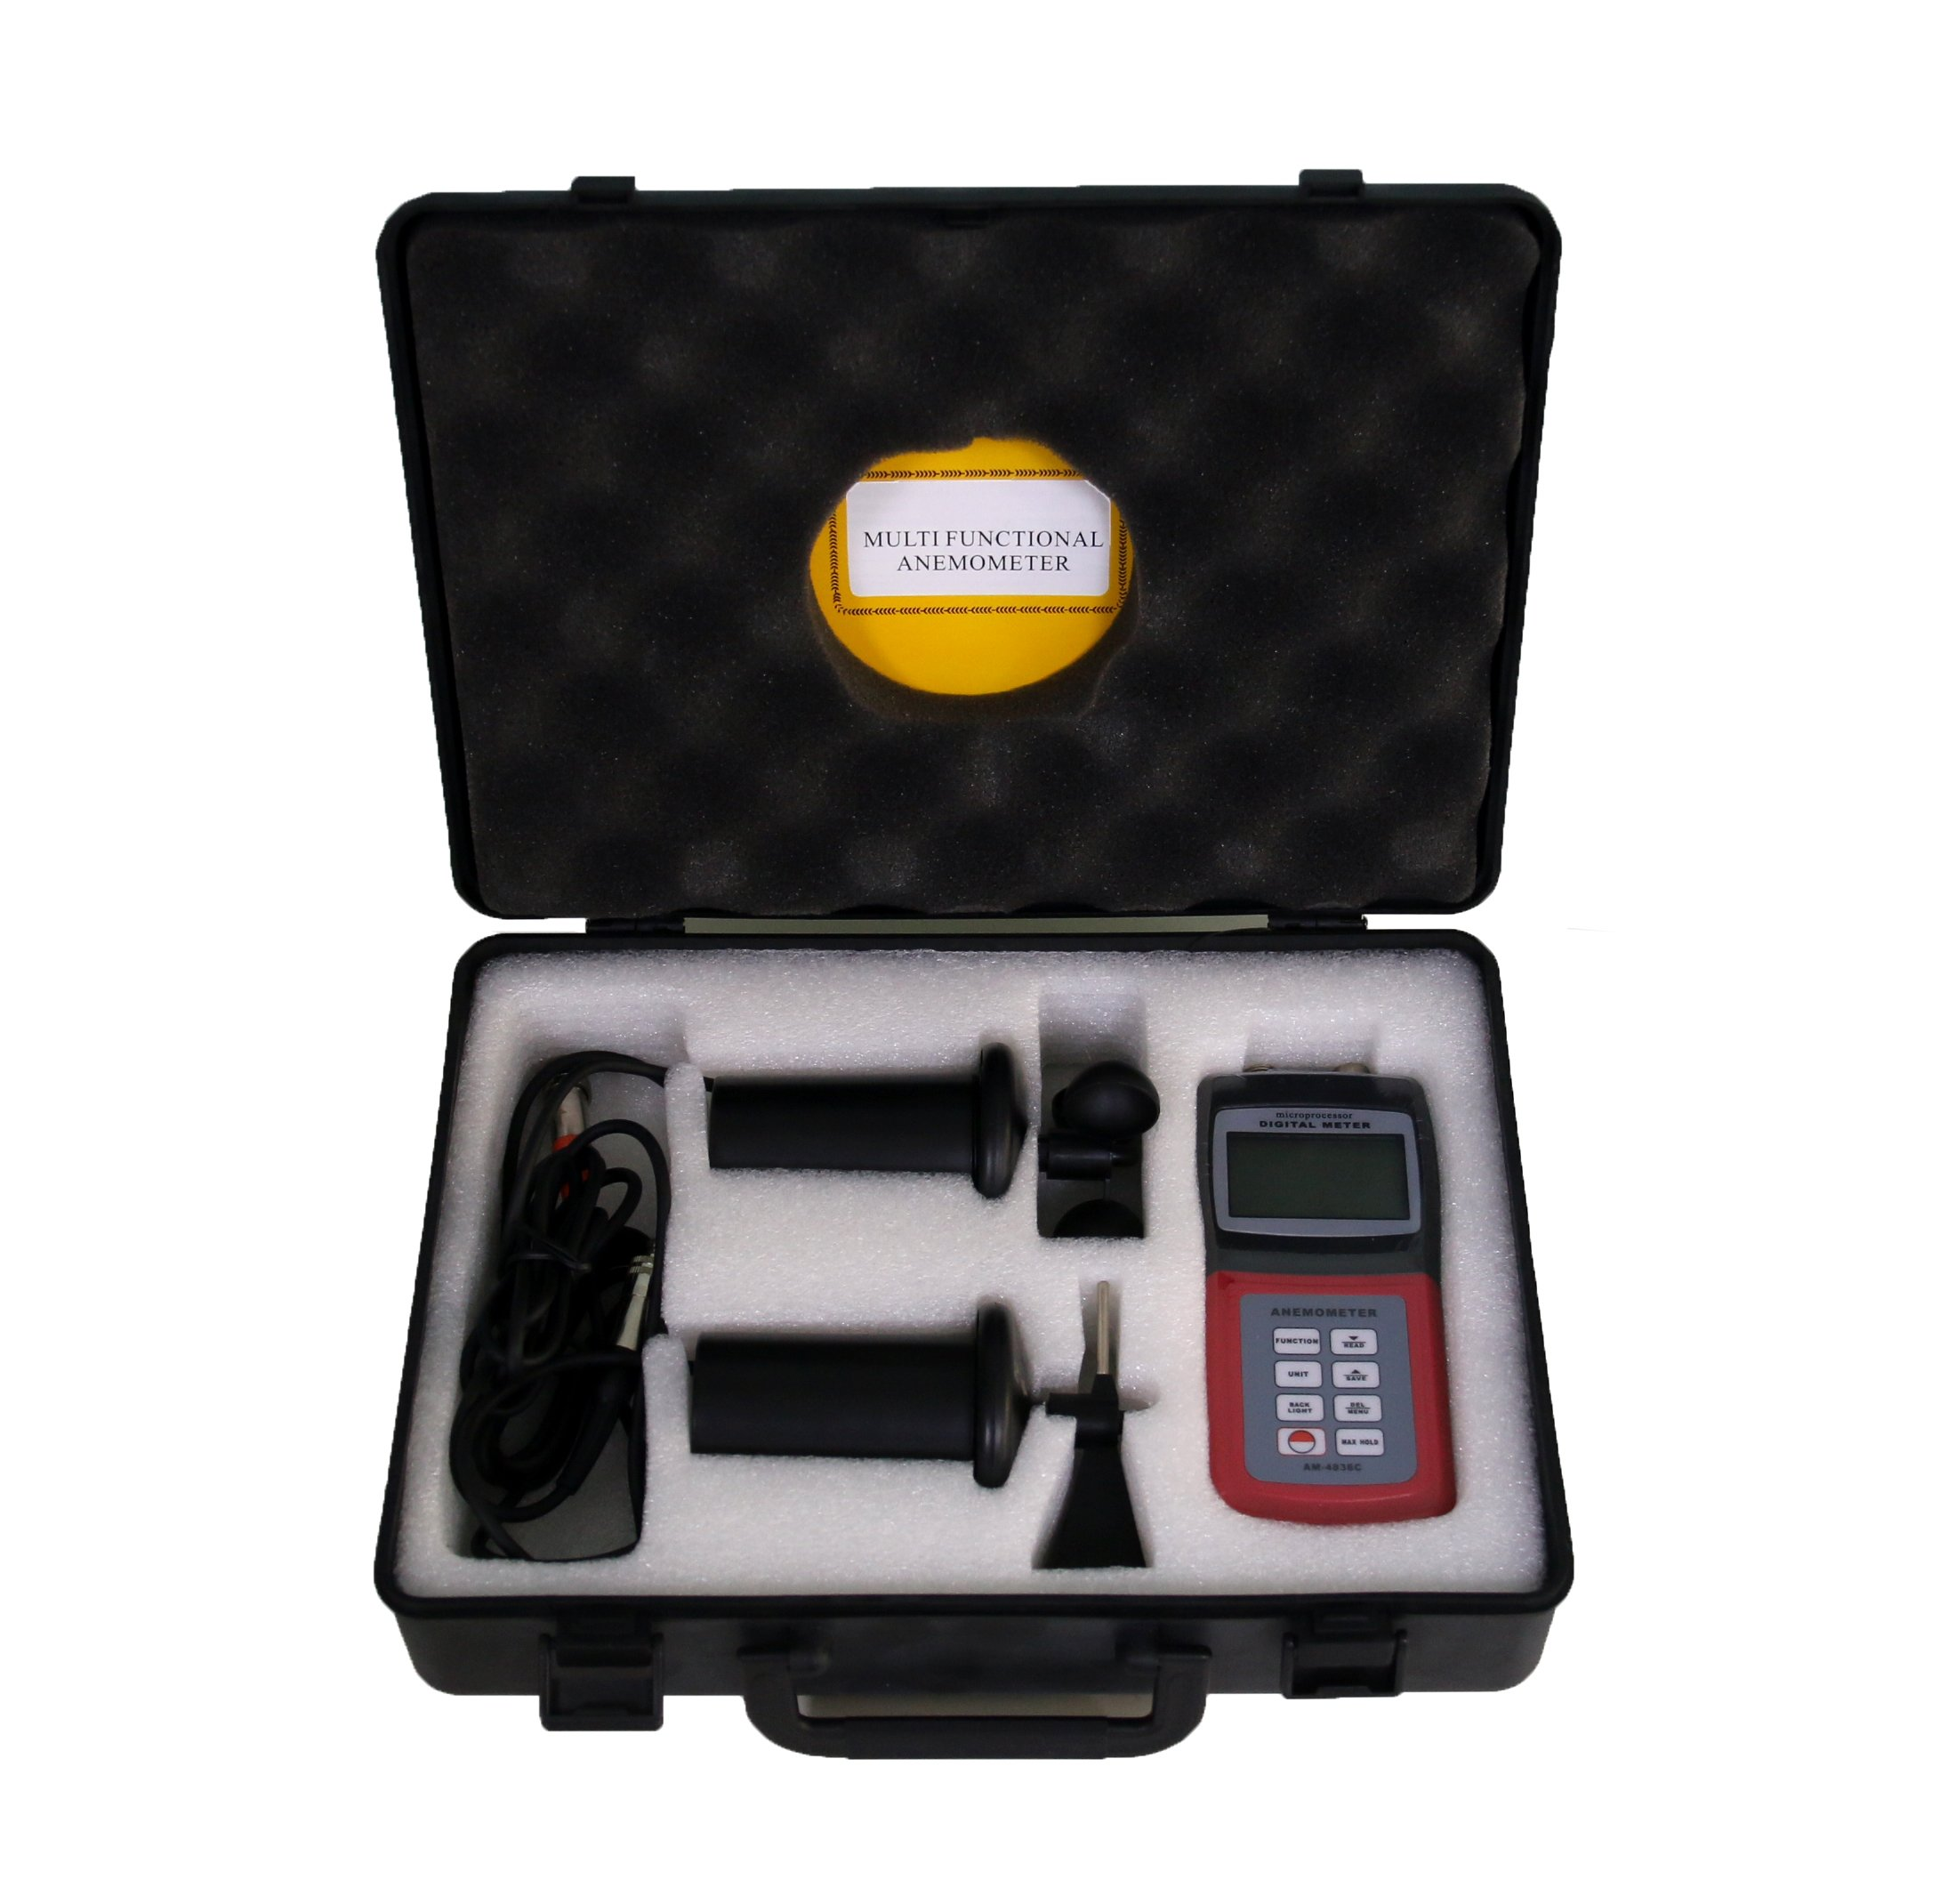 BYQTEC AM-4836C Digital Multifunction Anemometer Wind Speed Meter for Measuring Air Velocity Flow, Temperature, Direction and Wind Speed by BYQTEC (Image #1)